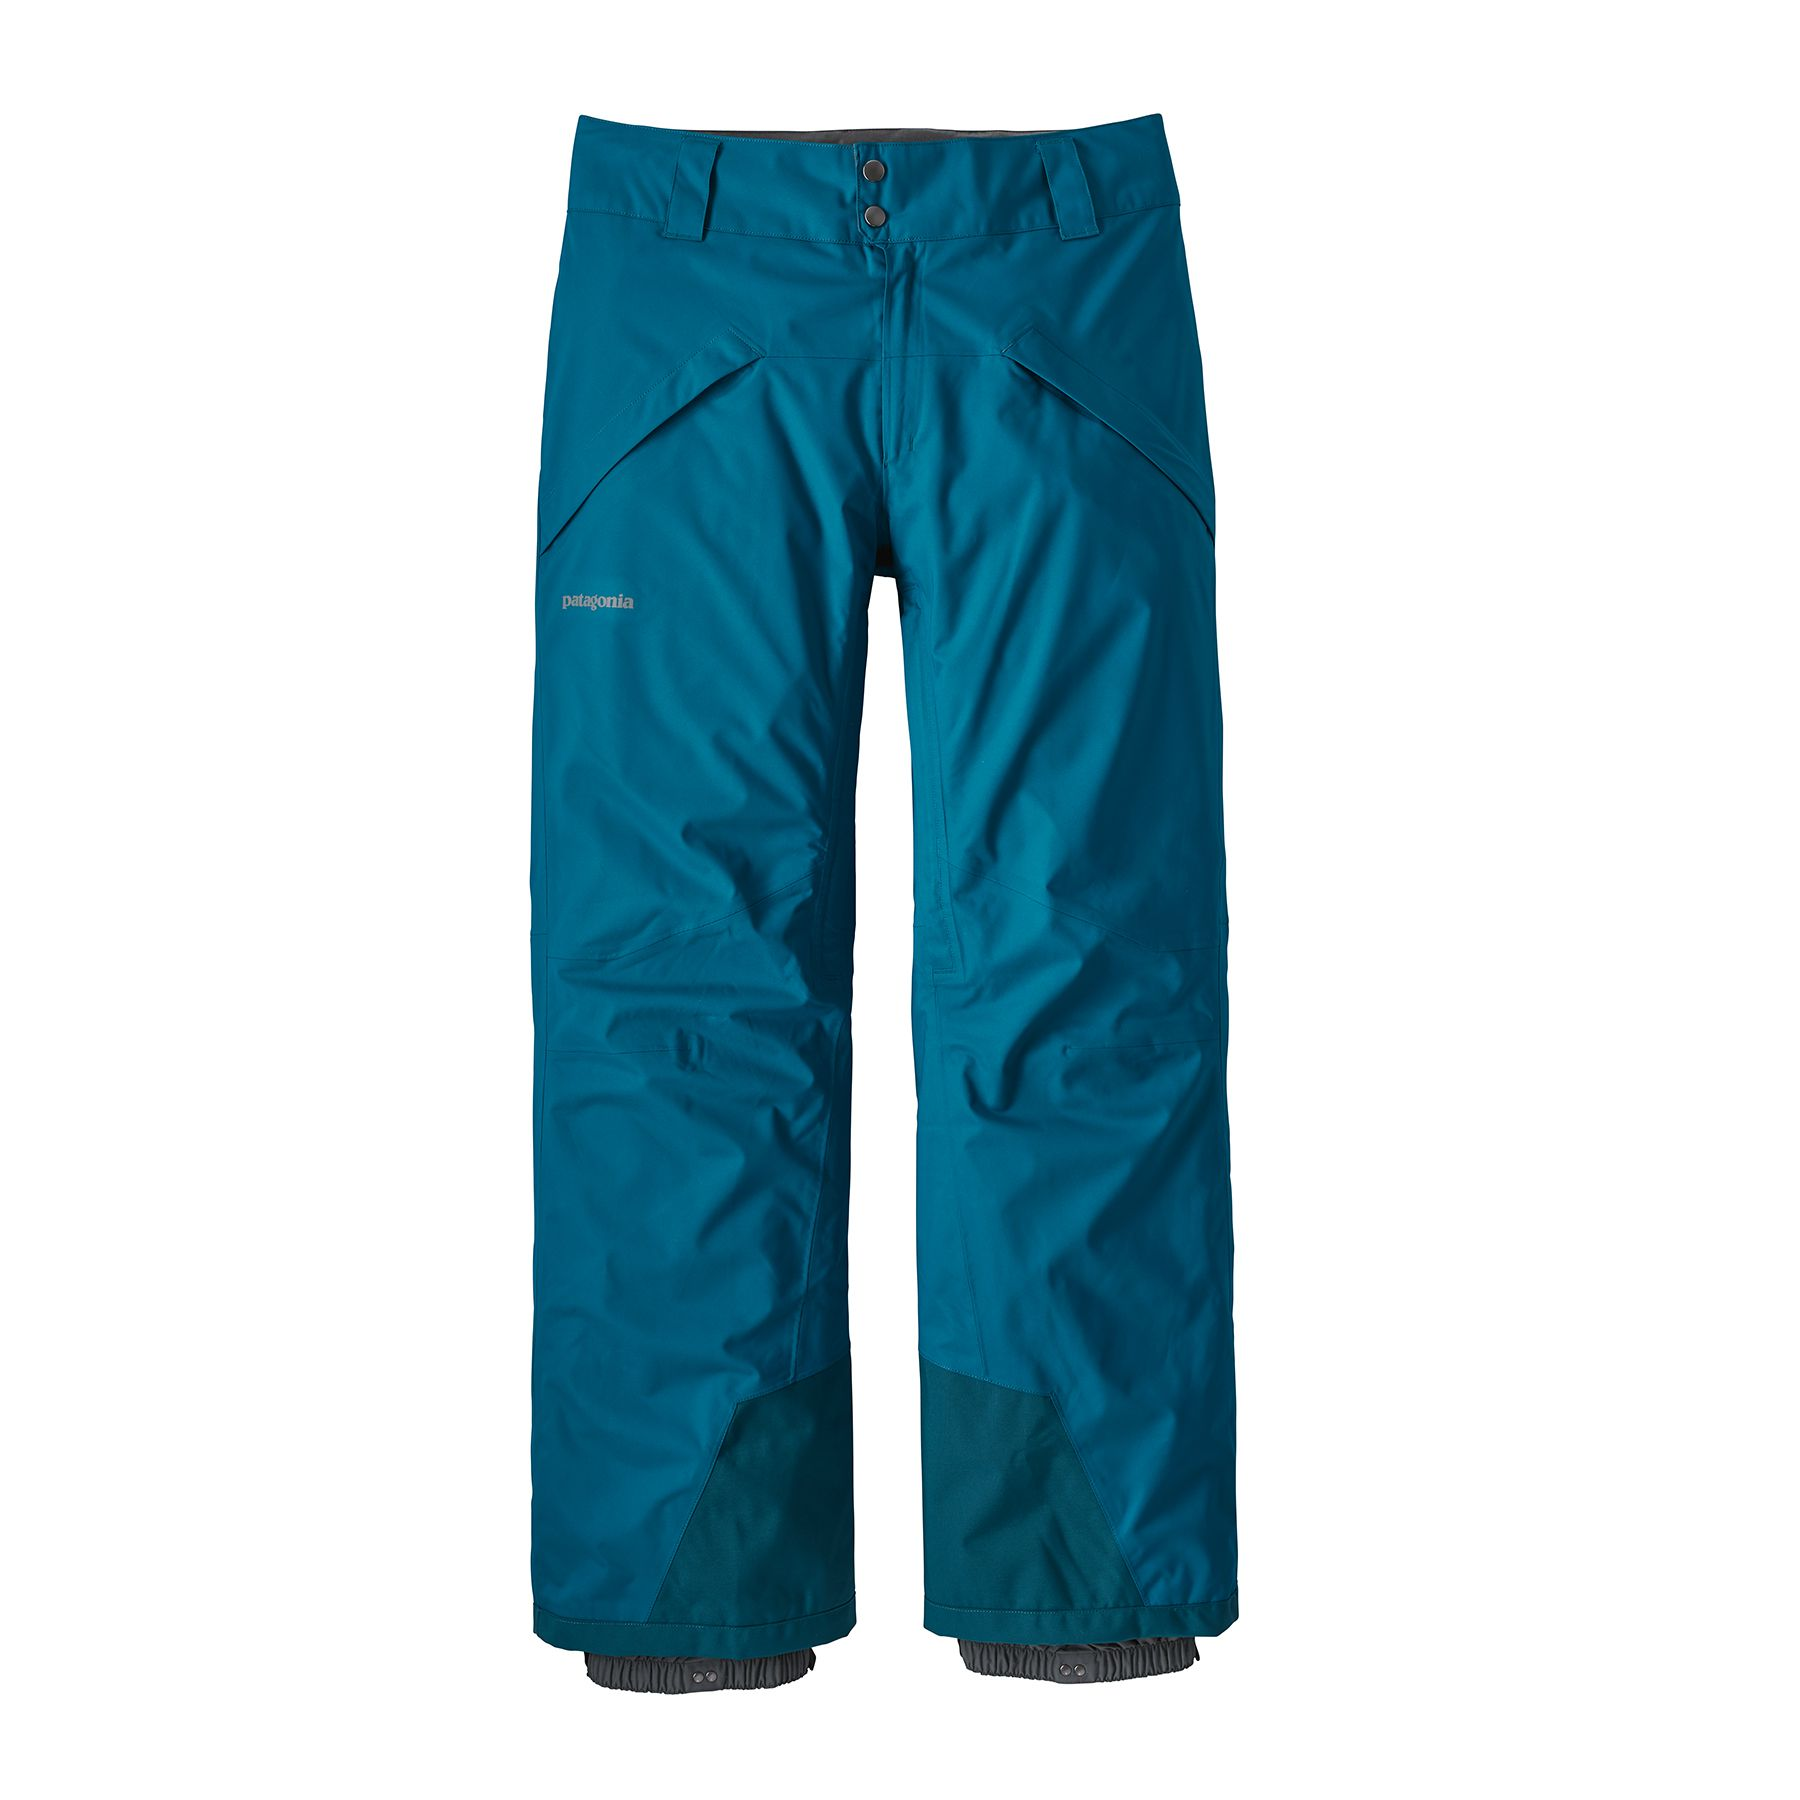 41071a6e078 Pantalon ski PATAGONIA M s Snowshot Big Sur Blue - La Green Session